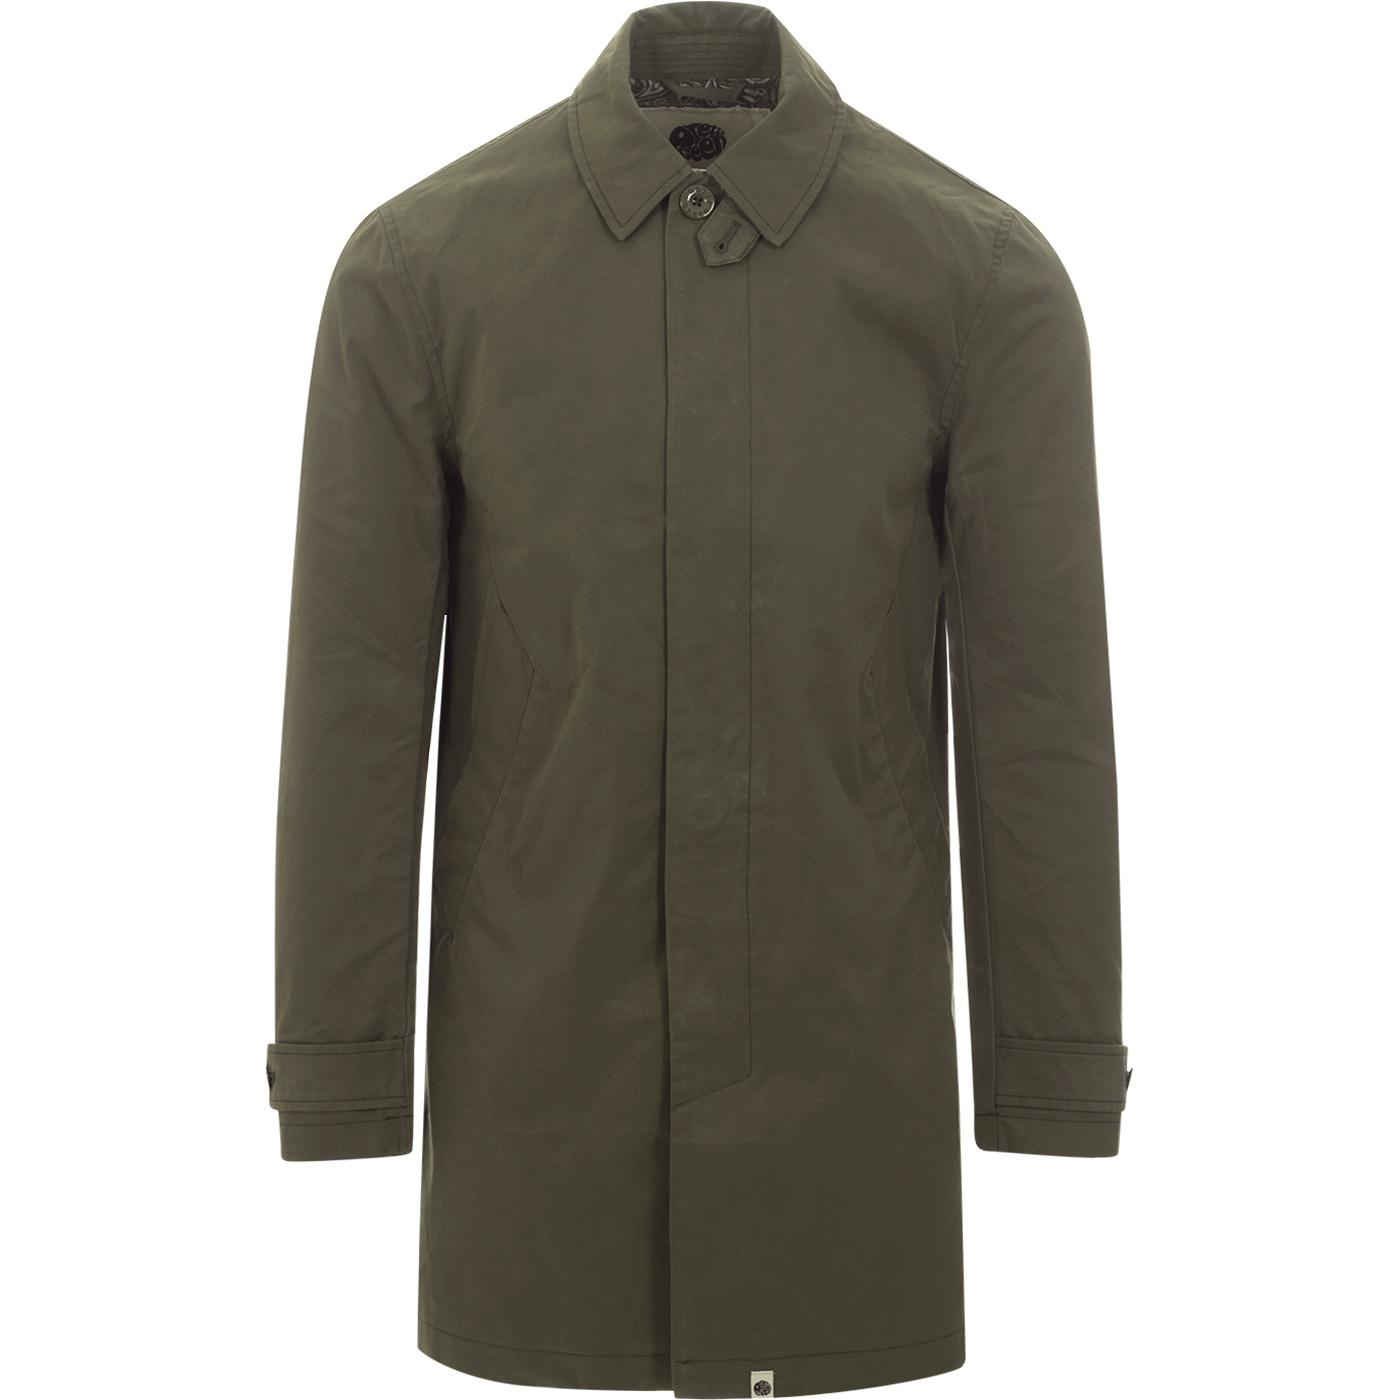 PRETTY GREEN Men's Retro Button Up Mac - Green